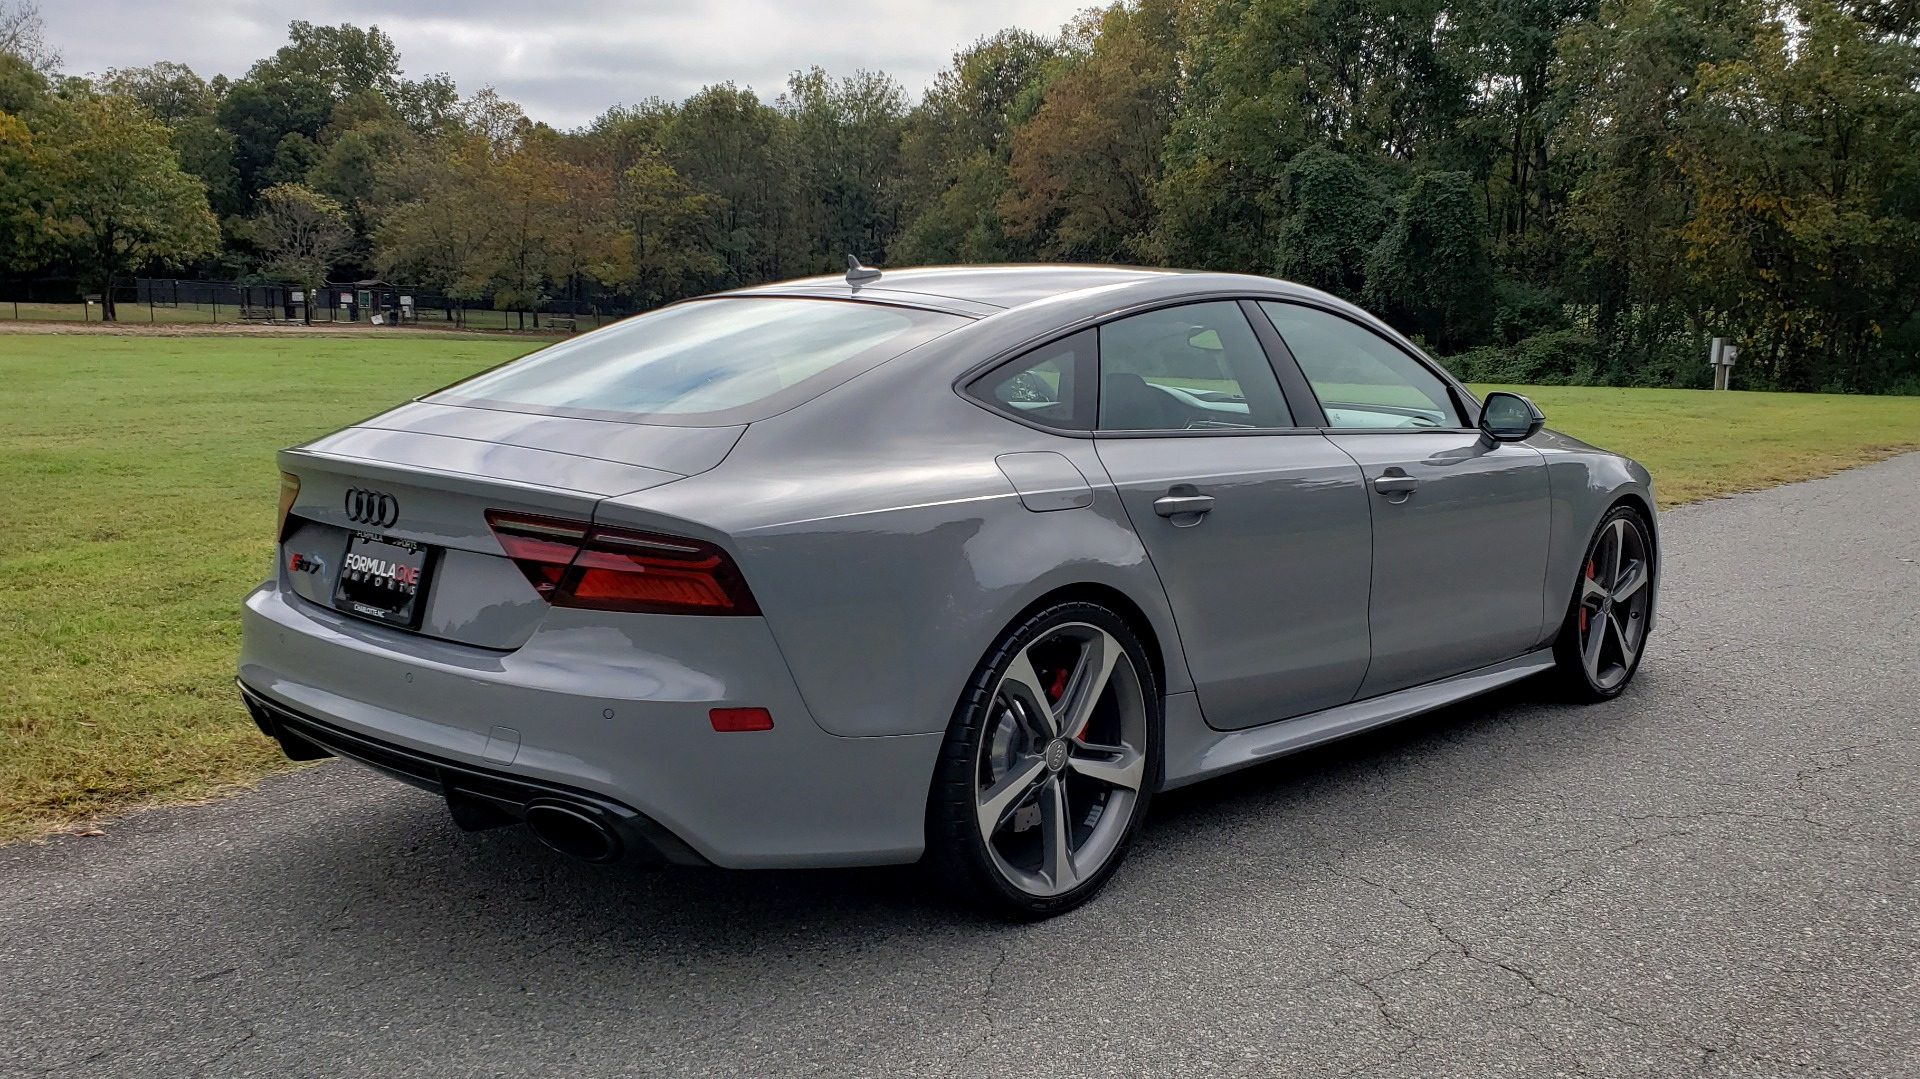 Used 2018 Audi RS 7 4.0T TIPTRONIC / CARBON OPTIC / DRVR ASST / NAV / REARVIEW / 750HP+ for sale Sold at Formula Imports in Charlotte NC 28227 3